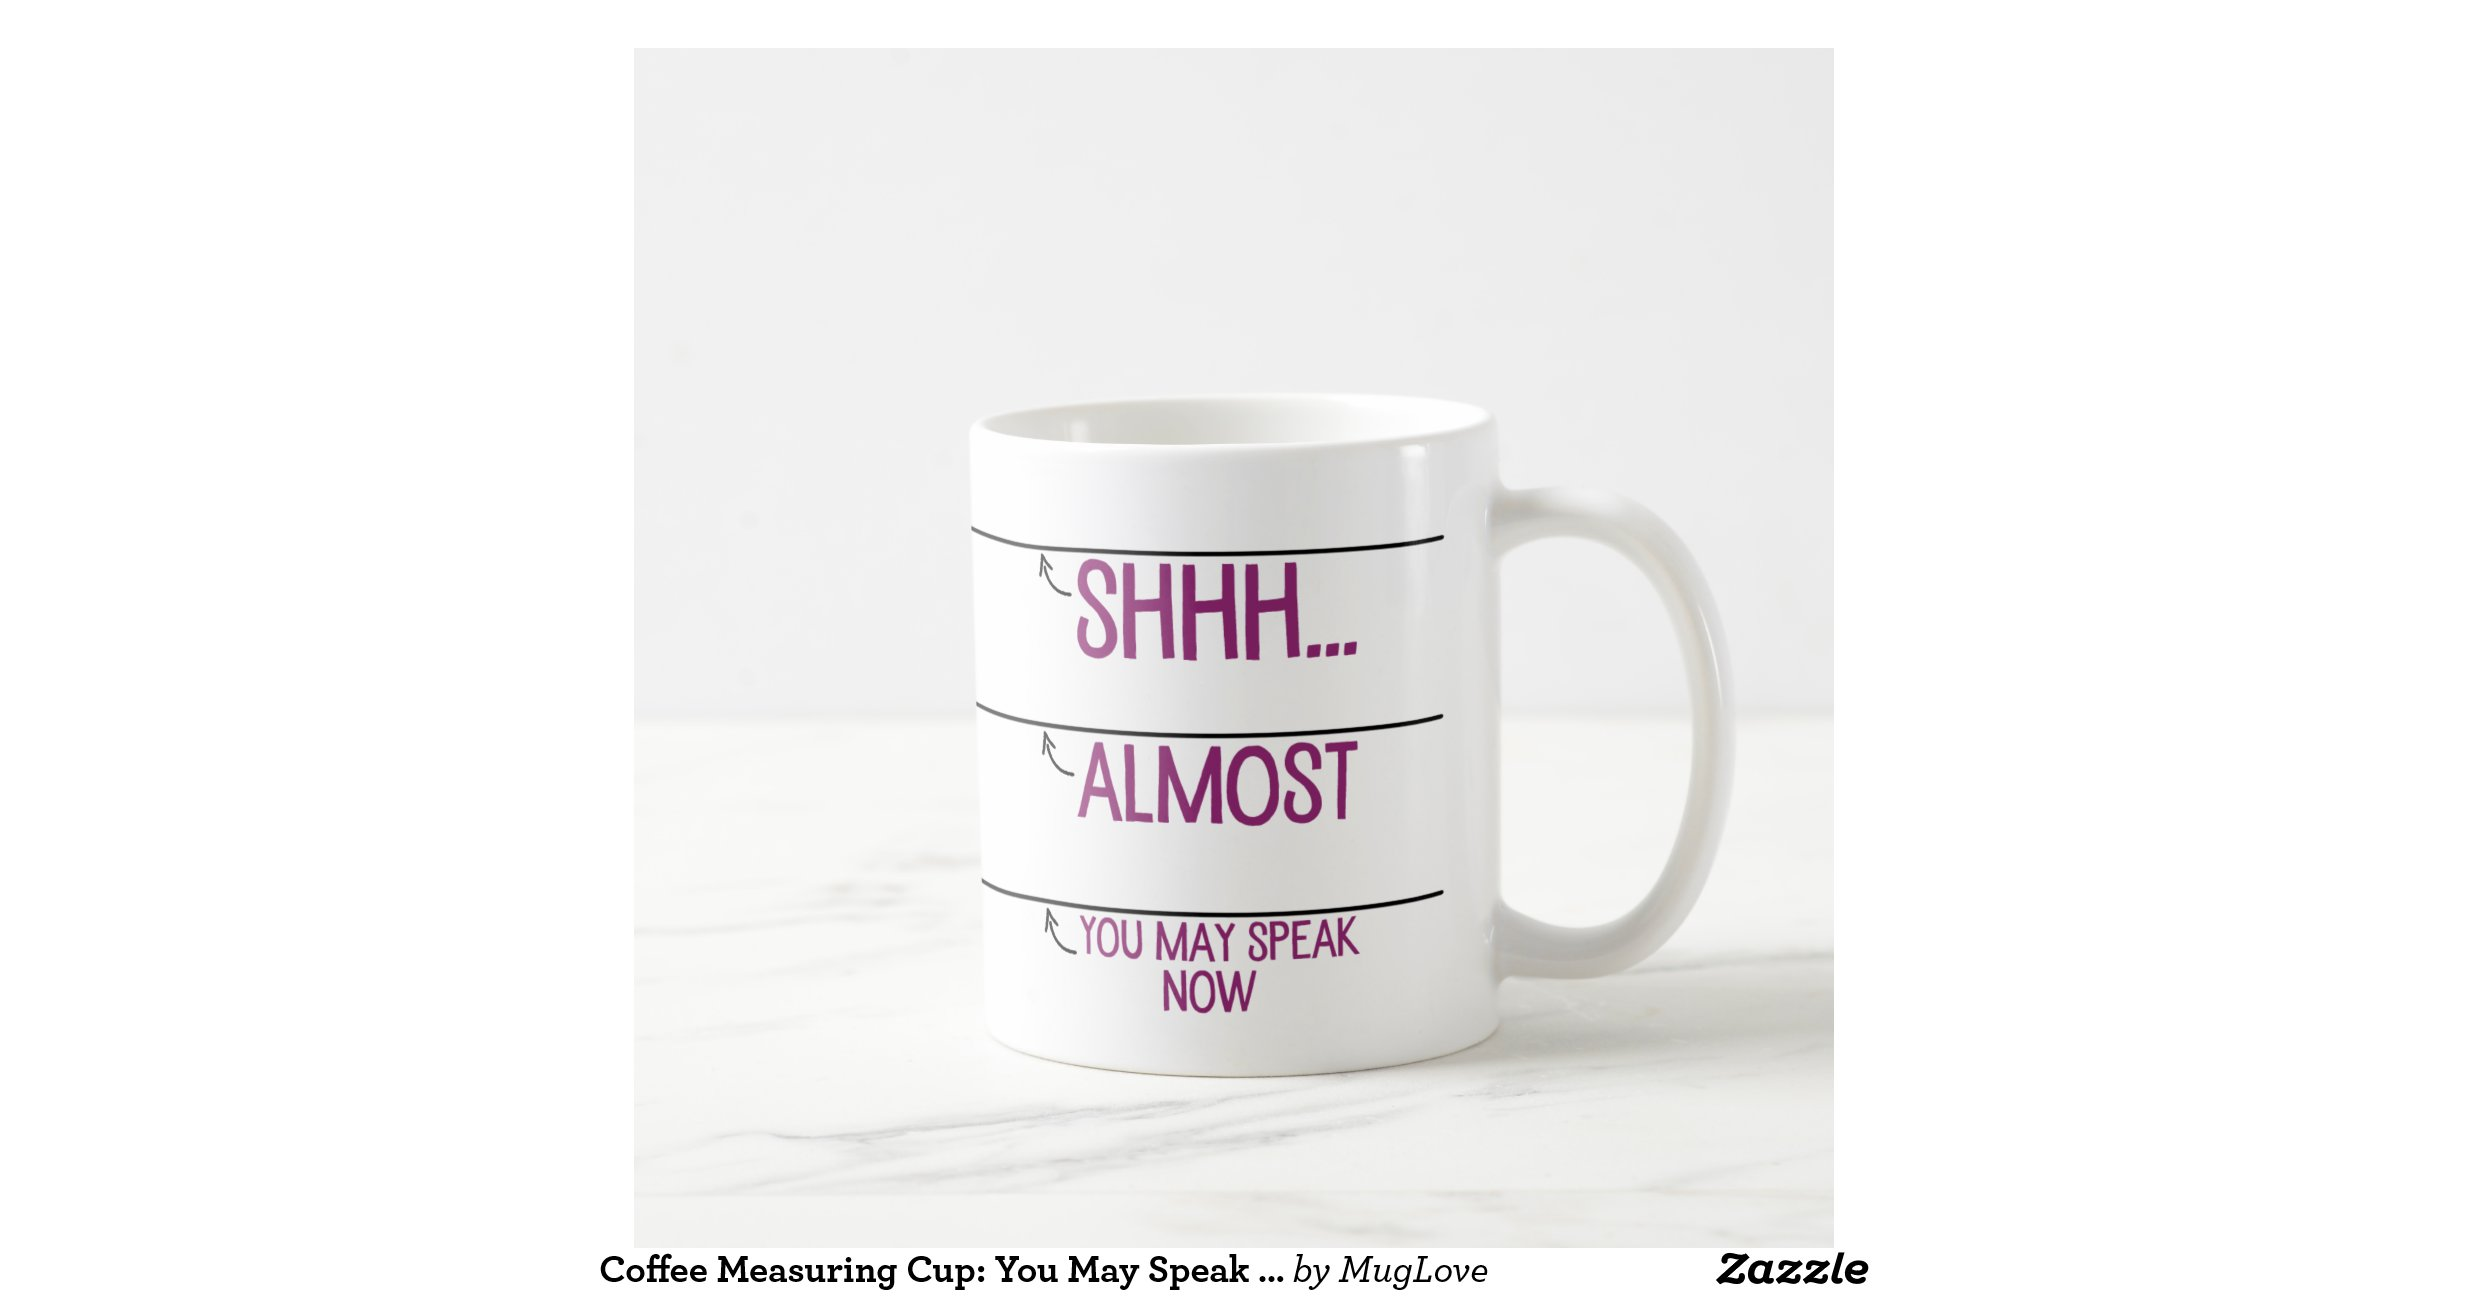 coffee_measuring_cup_you_may_speak_now_mug-r9a50068bc5f940dbbc95e9f63d1e2940_x7jgr_8byvr_1200 ...